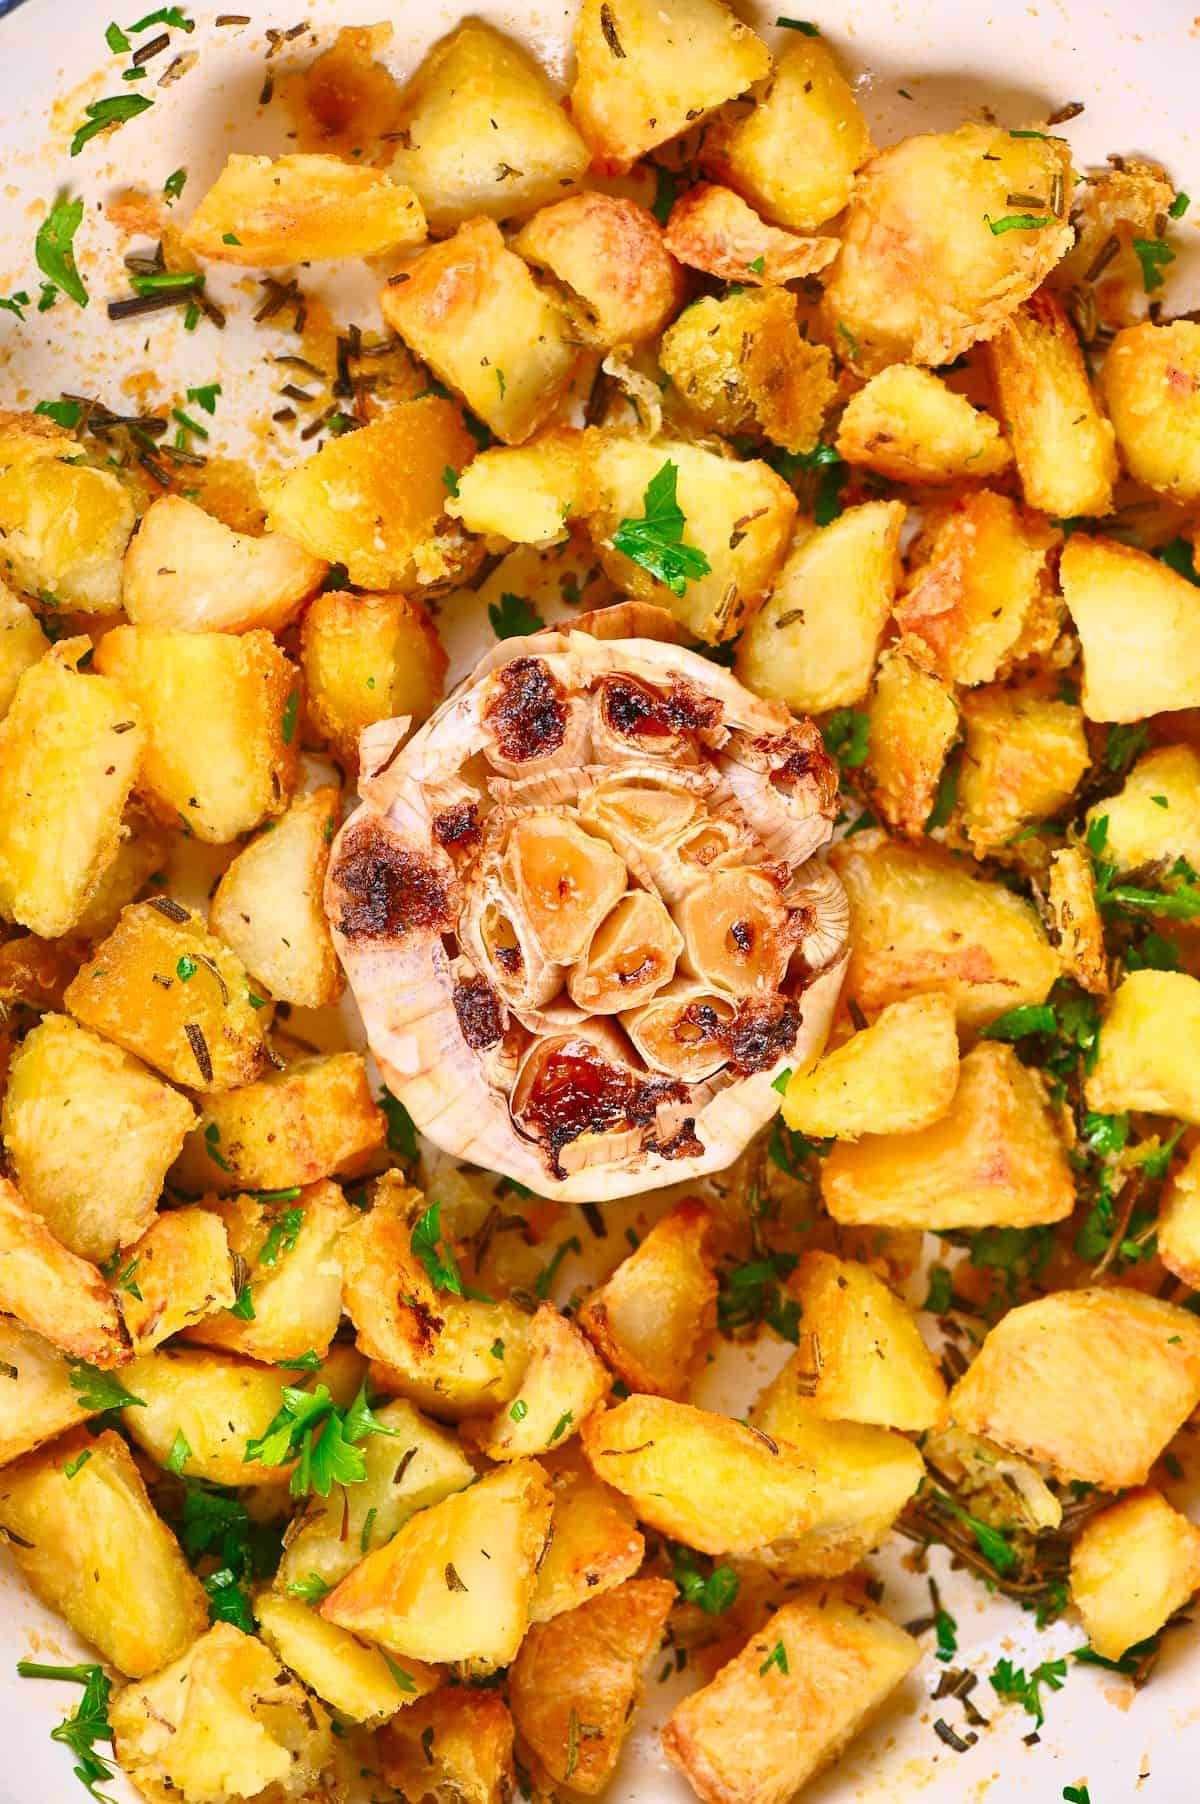 Close up of Roasted Potatoes with garlic